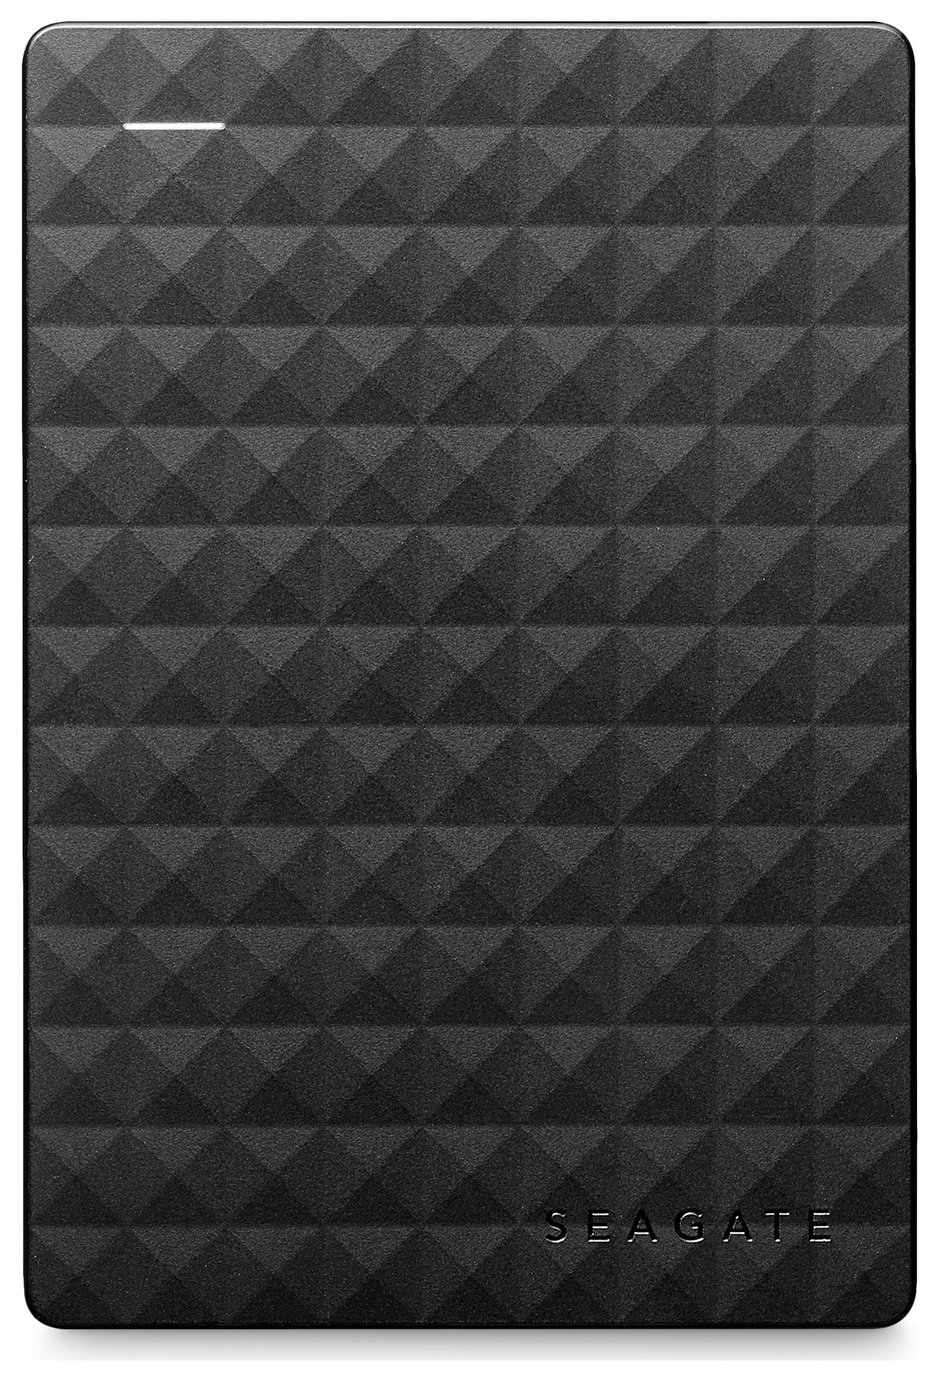 Seagate STEF2000401 Expansion External Best Price and Cheapest